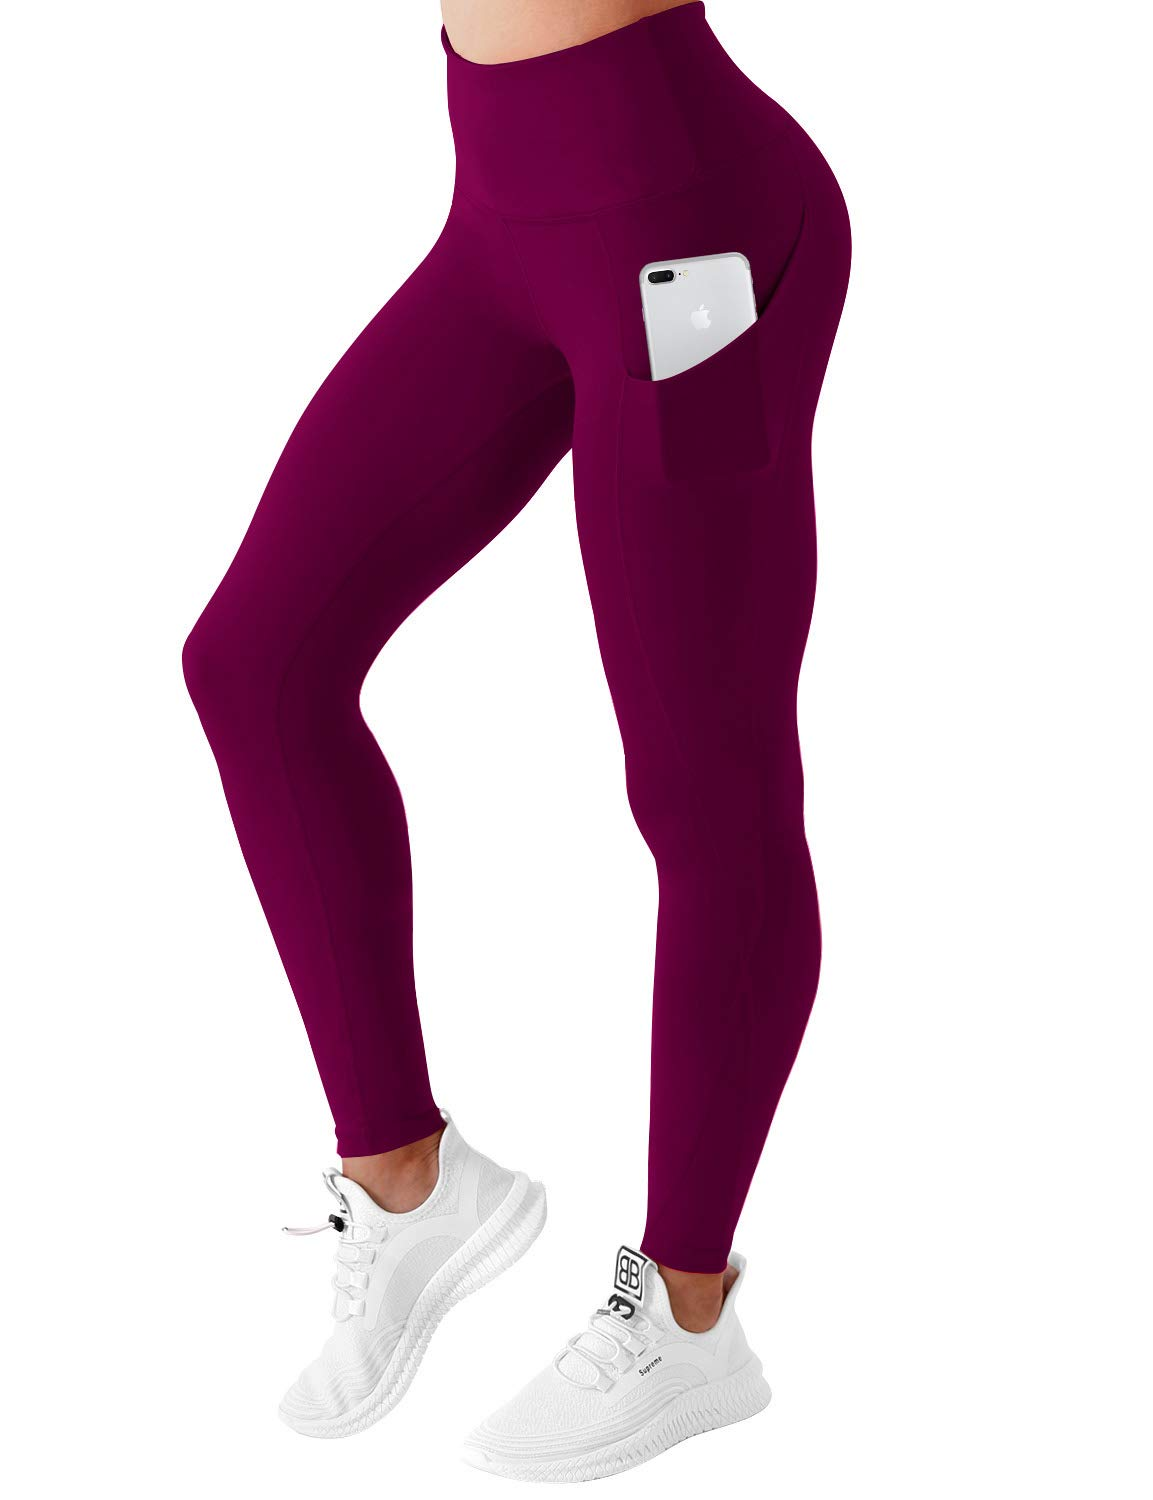 High Compression Yoga Capris Out Pocket Running Capris UPF30+ Non See-Through Fabric